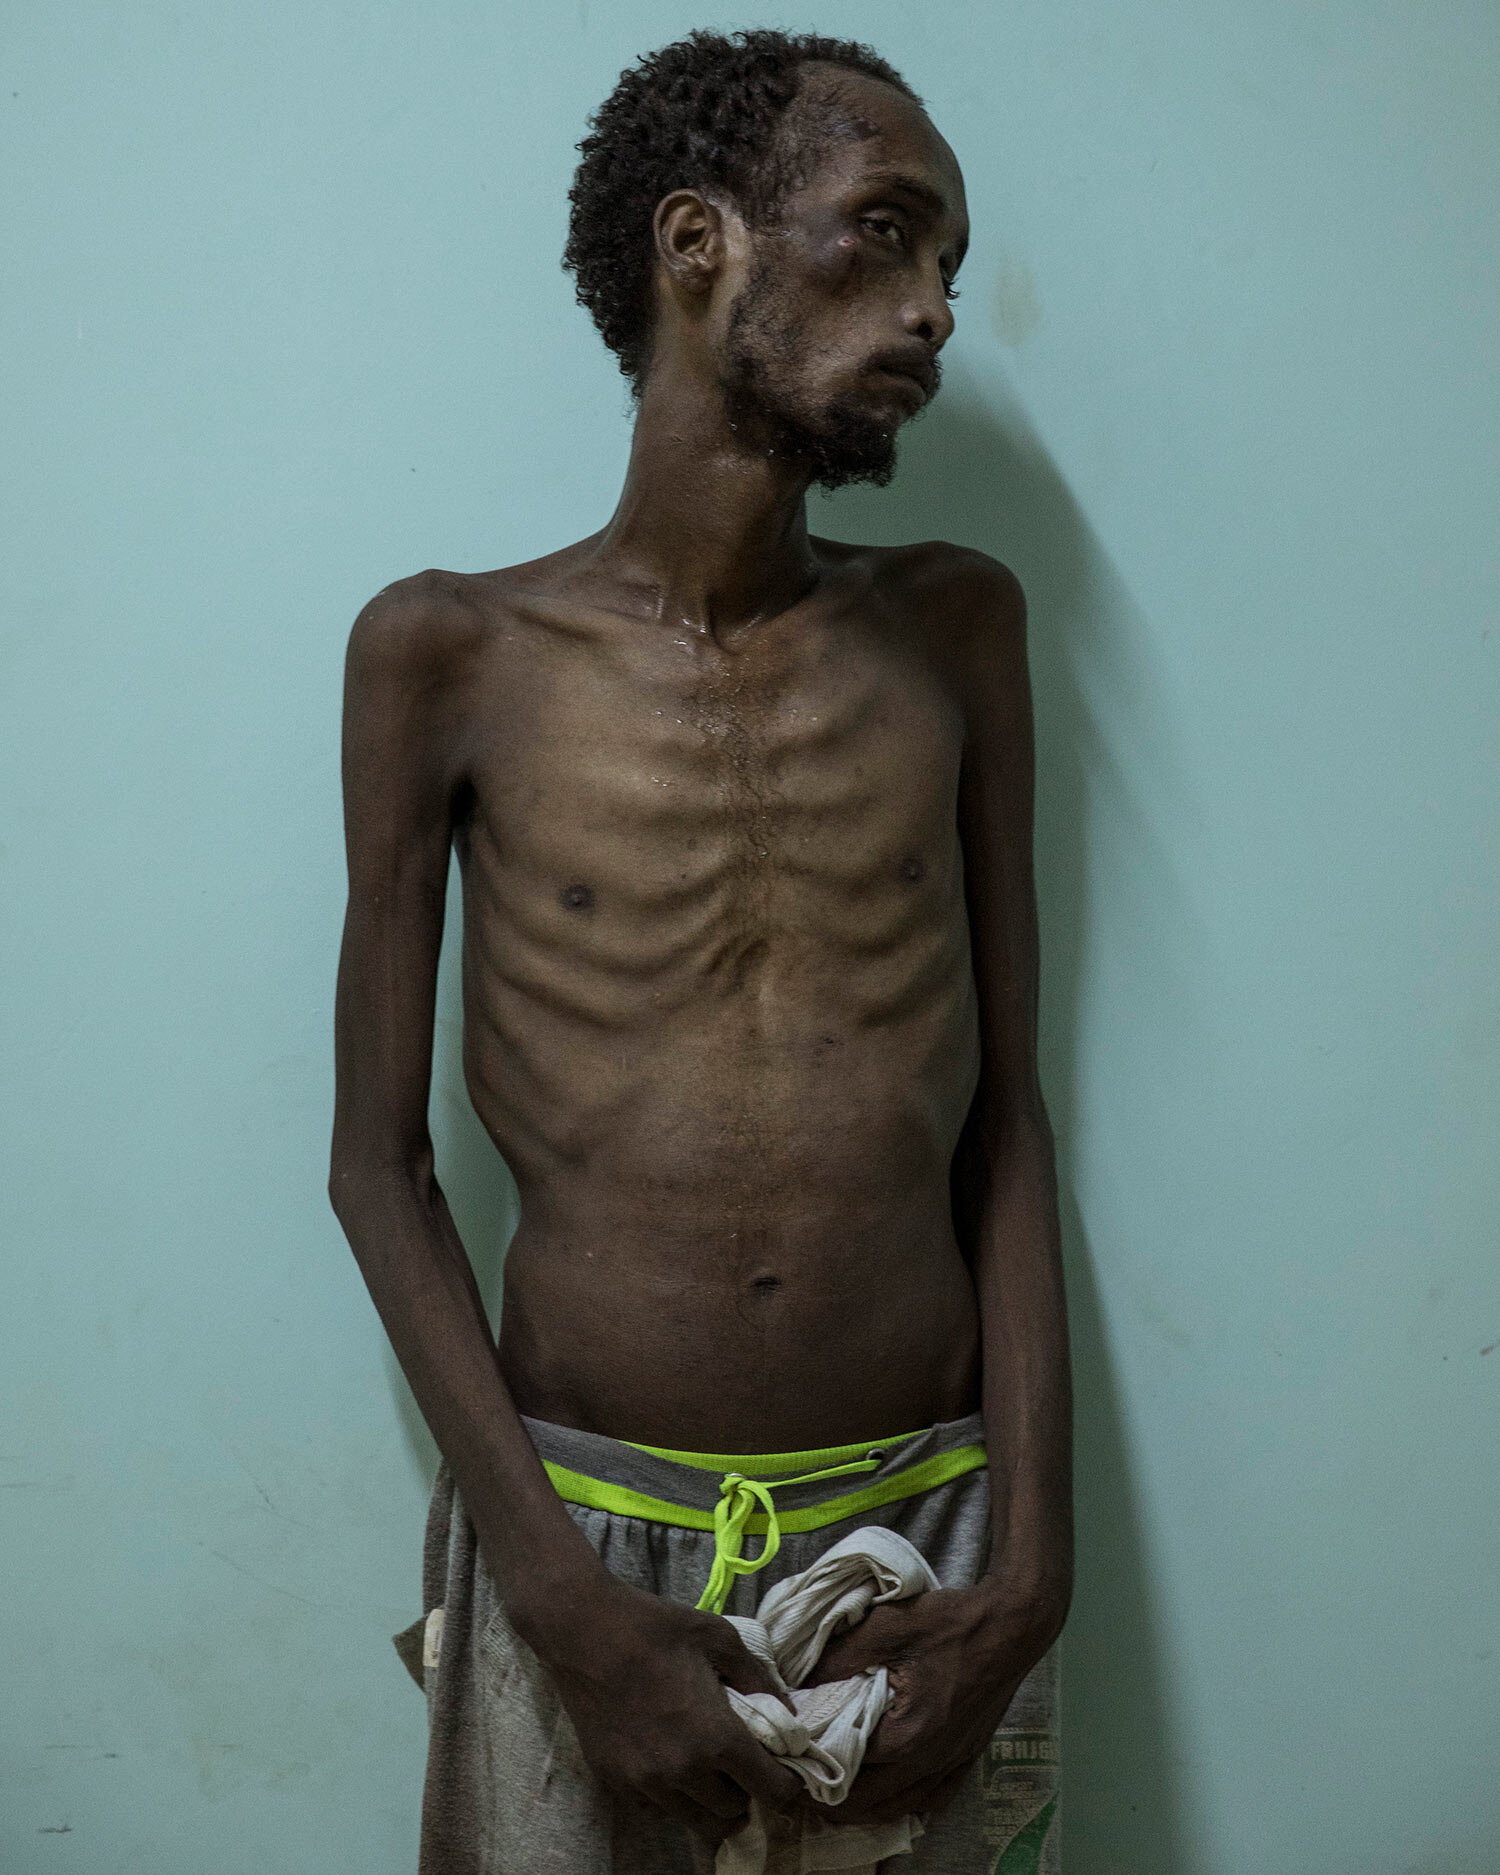 Ethiopian migrant Abdo Yassin, 23, of Oromo descent, stands for a photo at the Ras Alara Hospital, in Lahj, Yemen. Yassin says he was in a hosh locked up and tortured for months because he didn't have the money to pay a ransom. (AP Photo/Nariman El-Mofty)